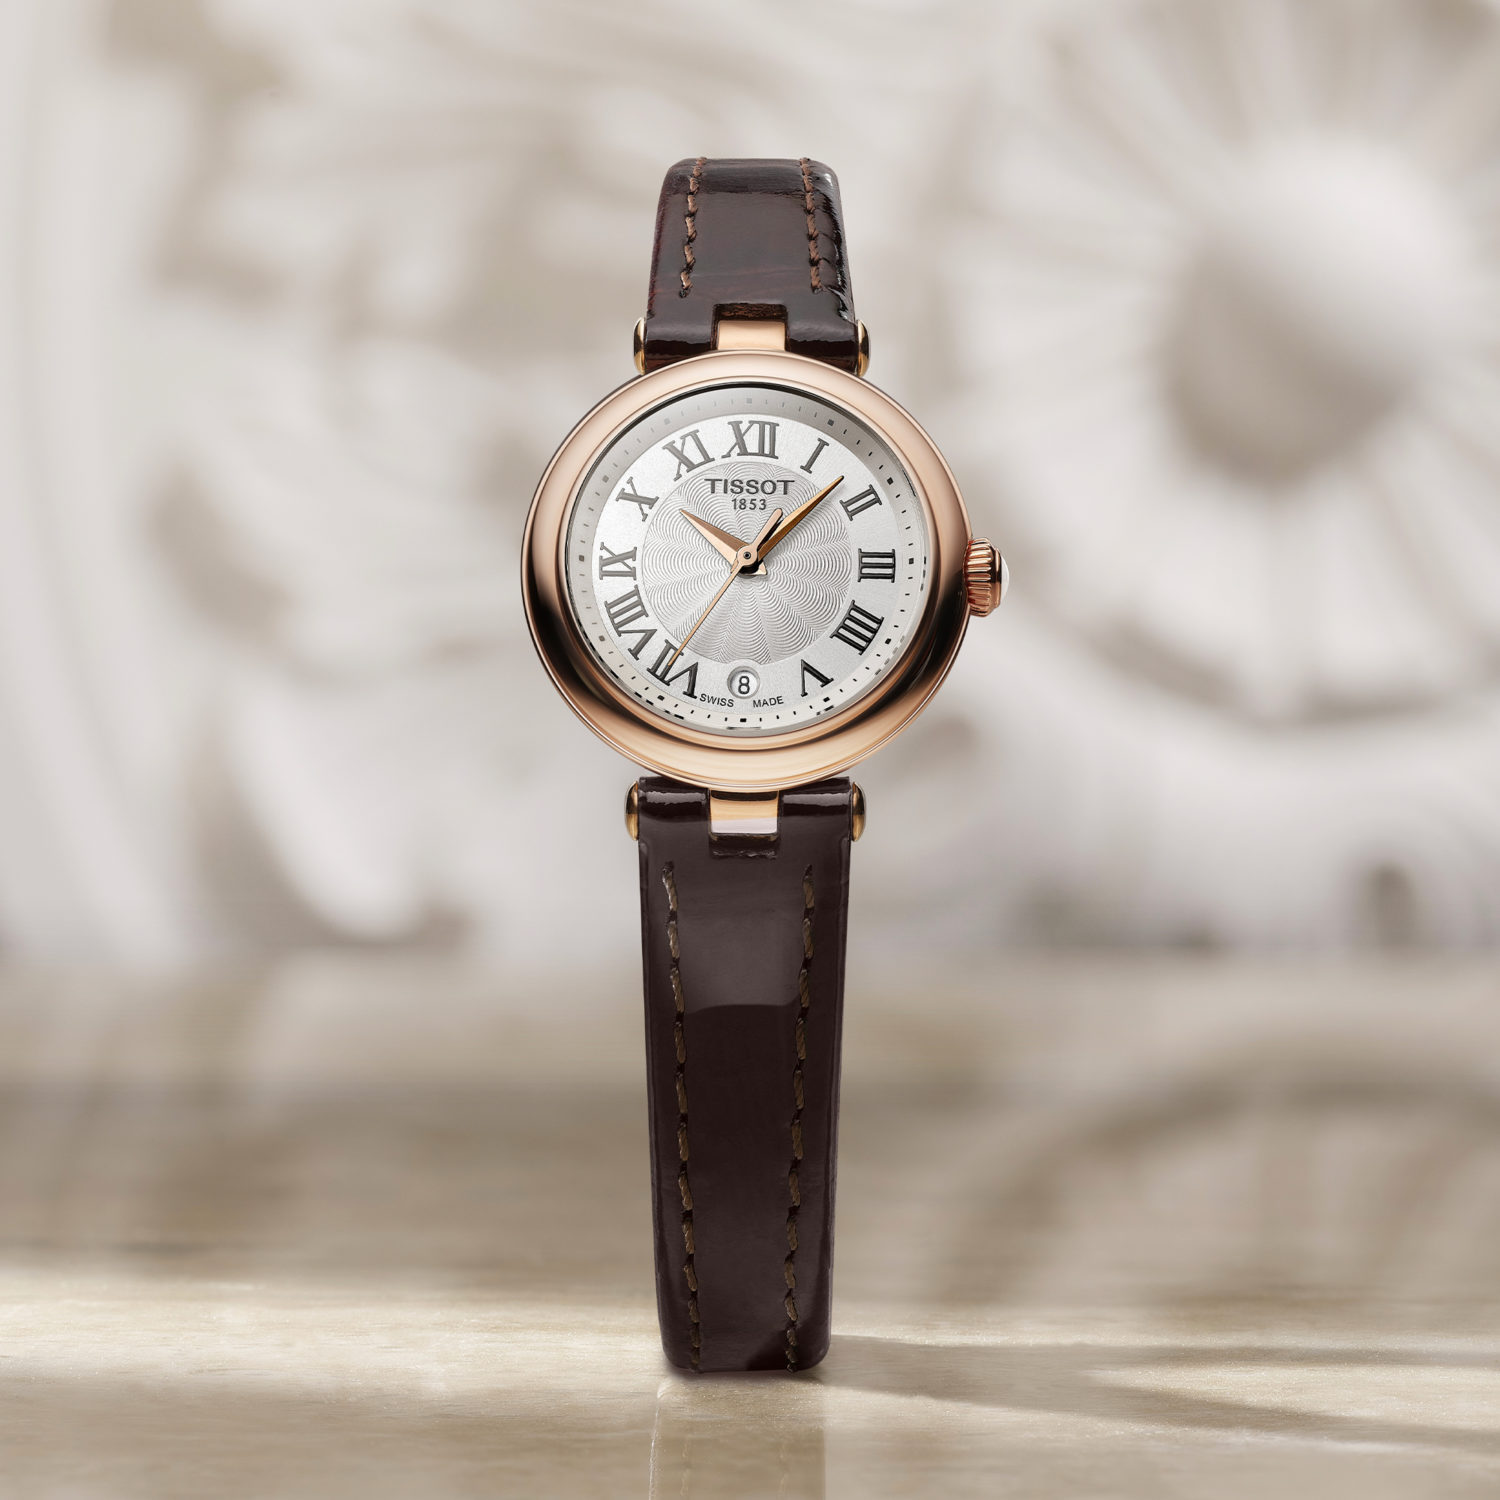 Tissot Bellissima Wristwatch by Anil Torres at Tissot for use by 360 Magazine